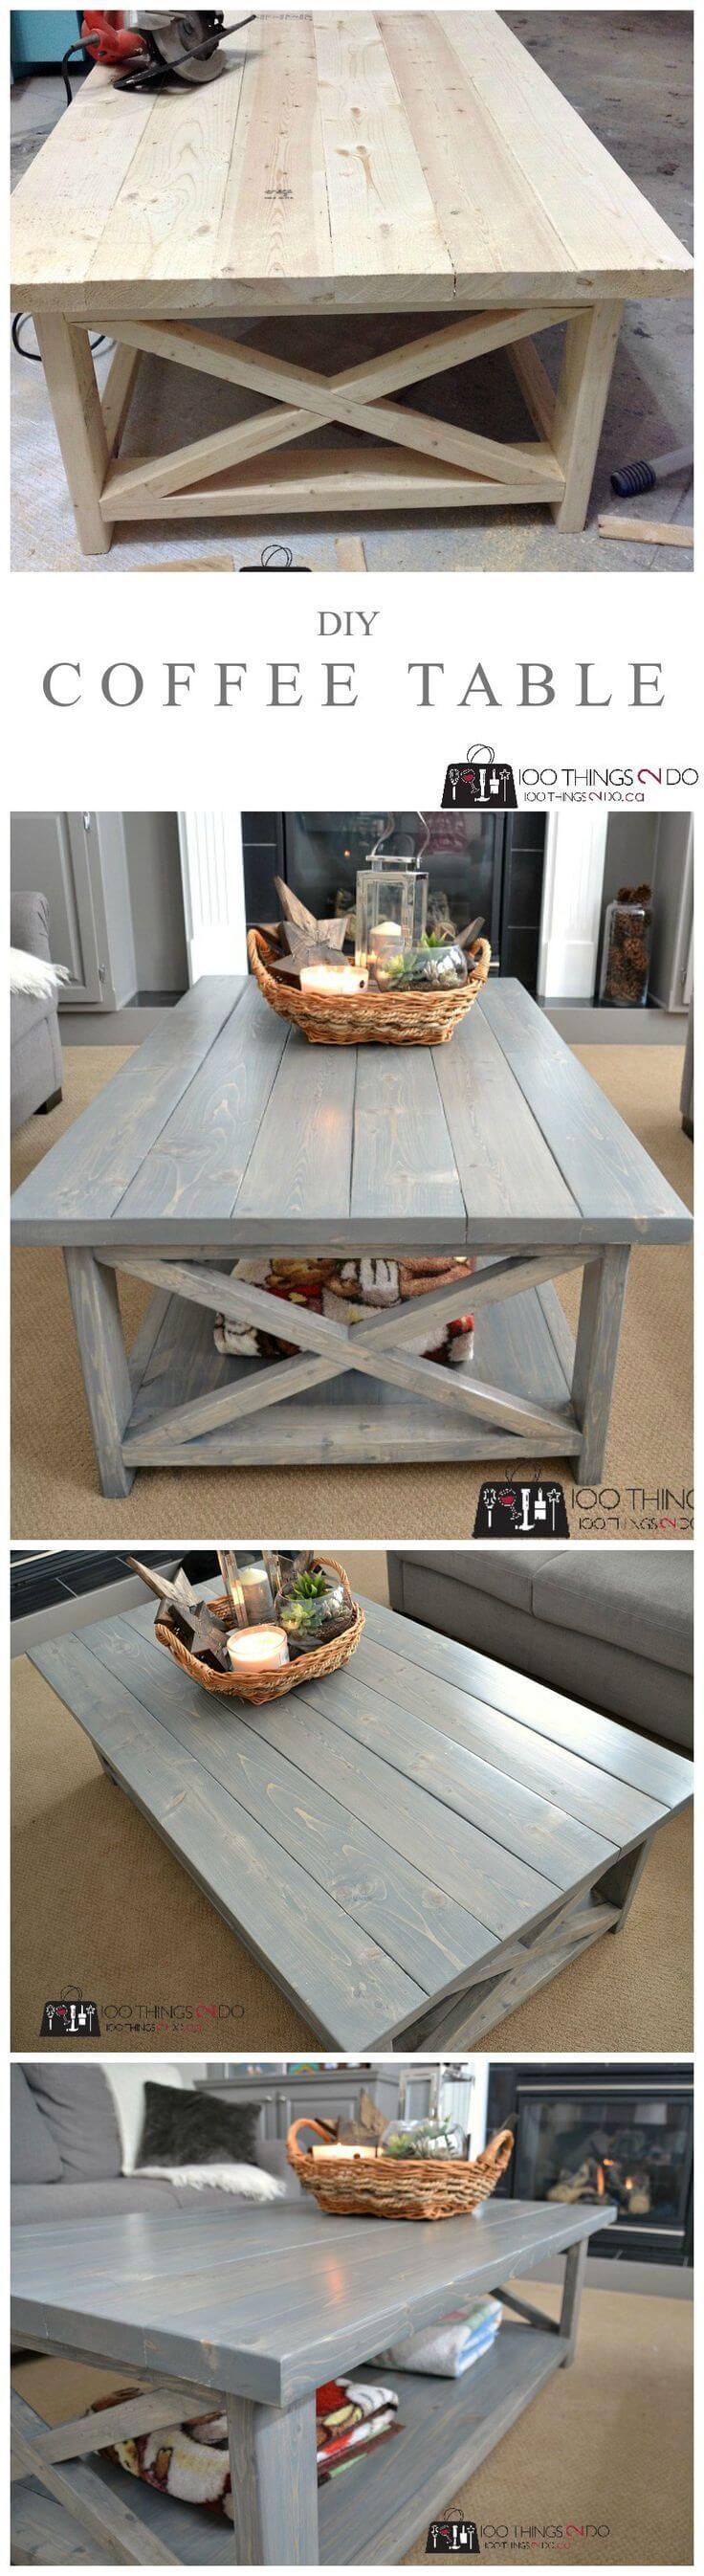 25 Best DIY Farmhouse Coffee Table Ideas and Designs for 2017